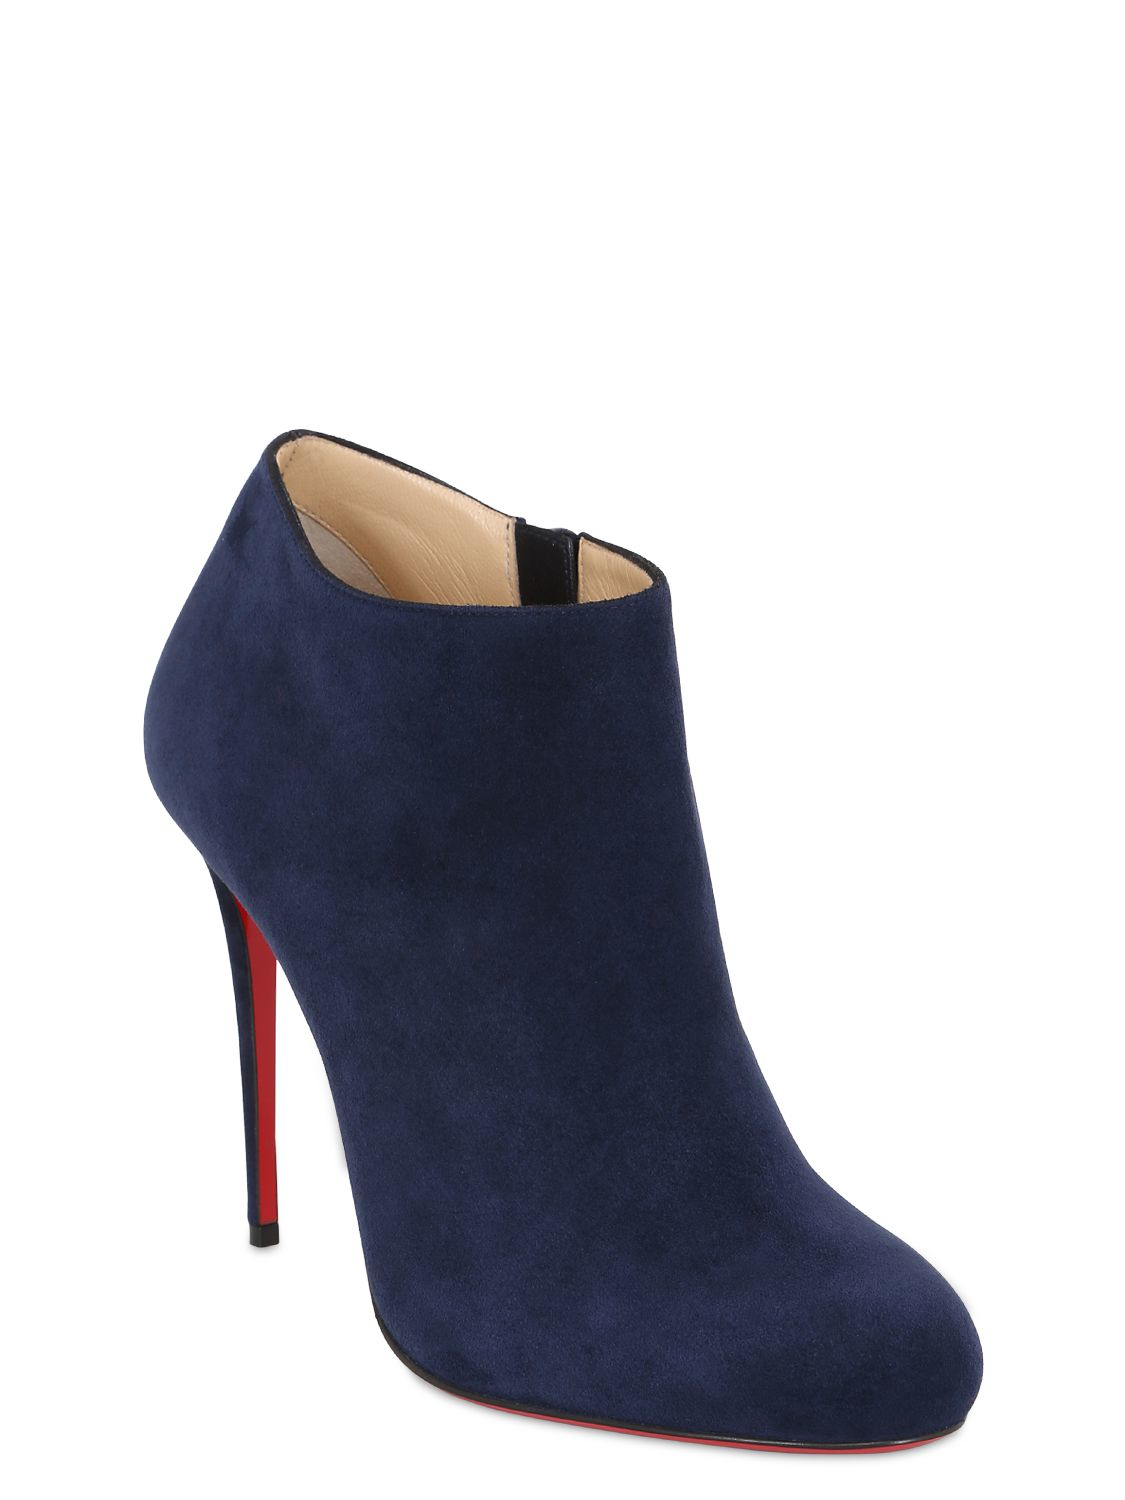 Christian Louboutin 100mm Bellissima Suede Ankle Boots In Blue Lyst